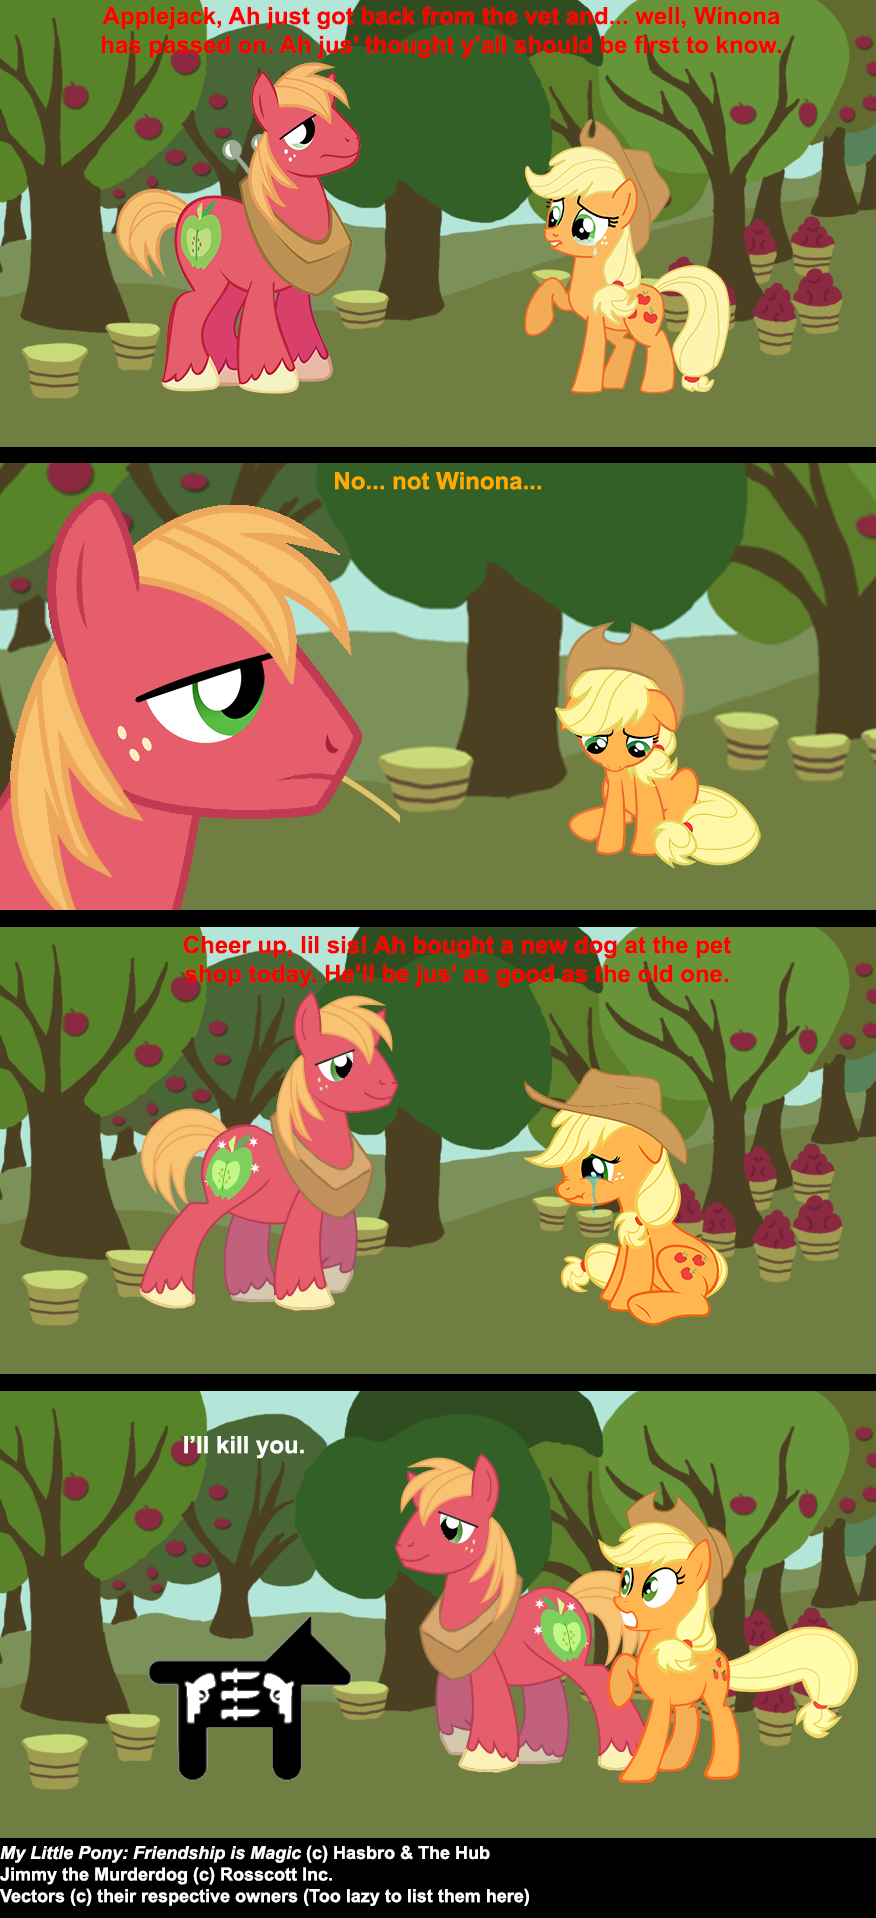 My Little Pony: Obscure References are Magic